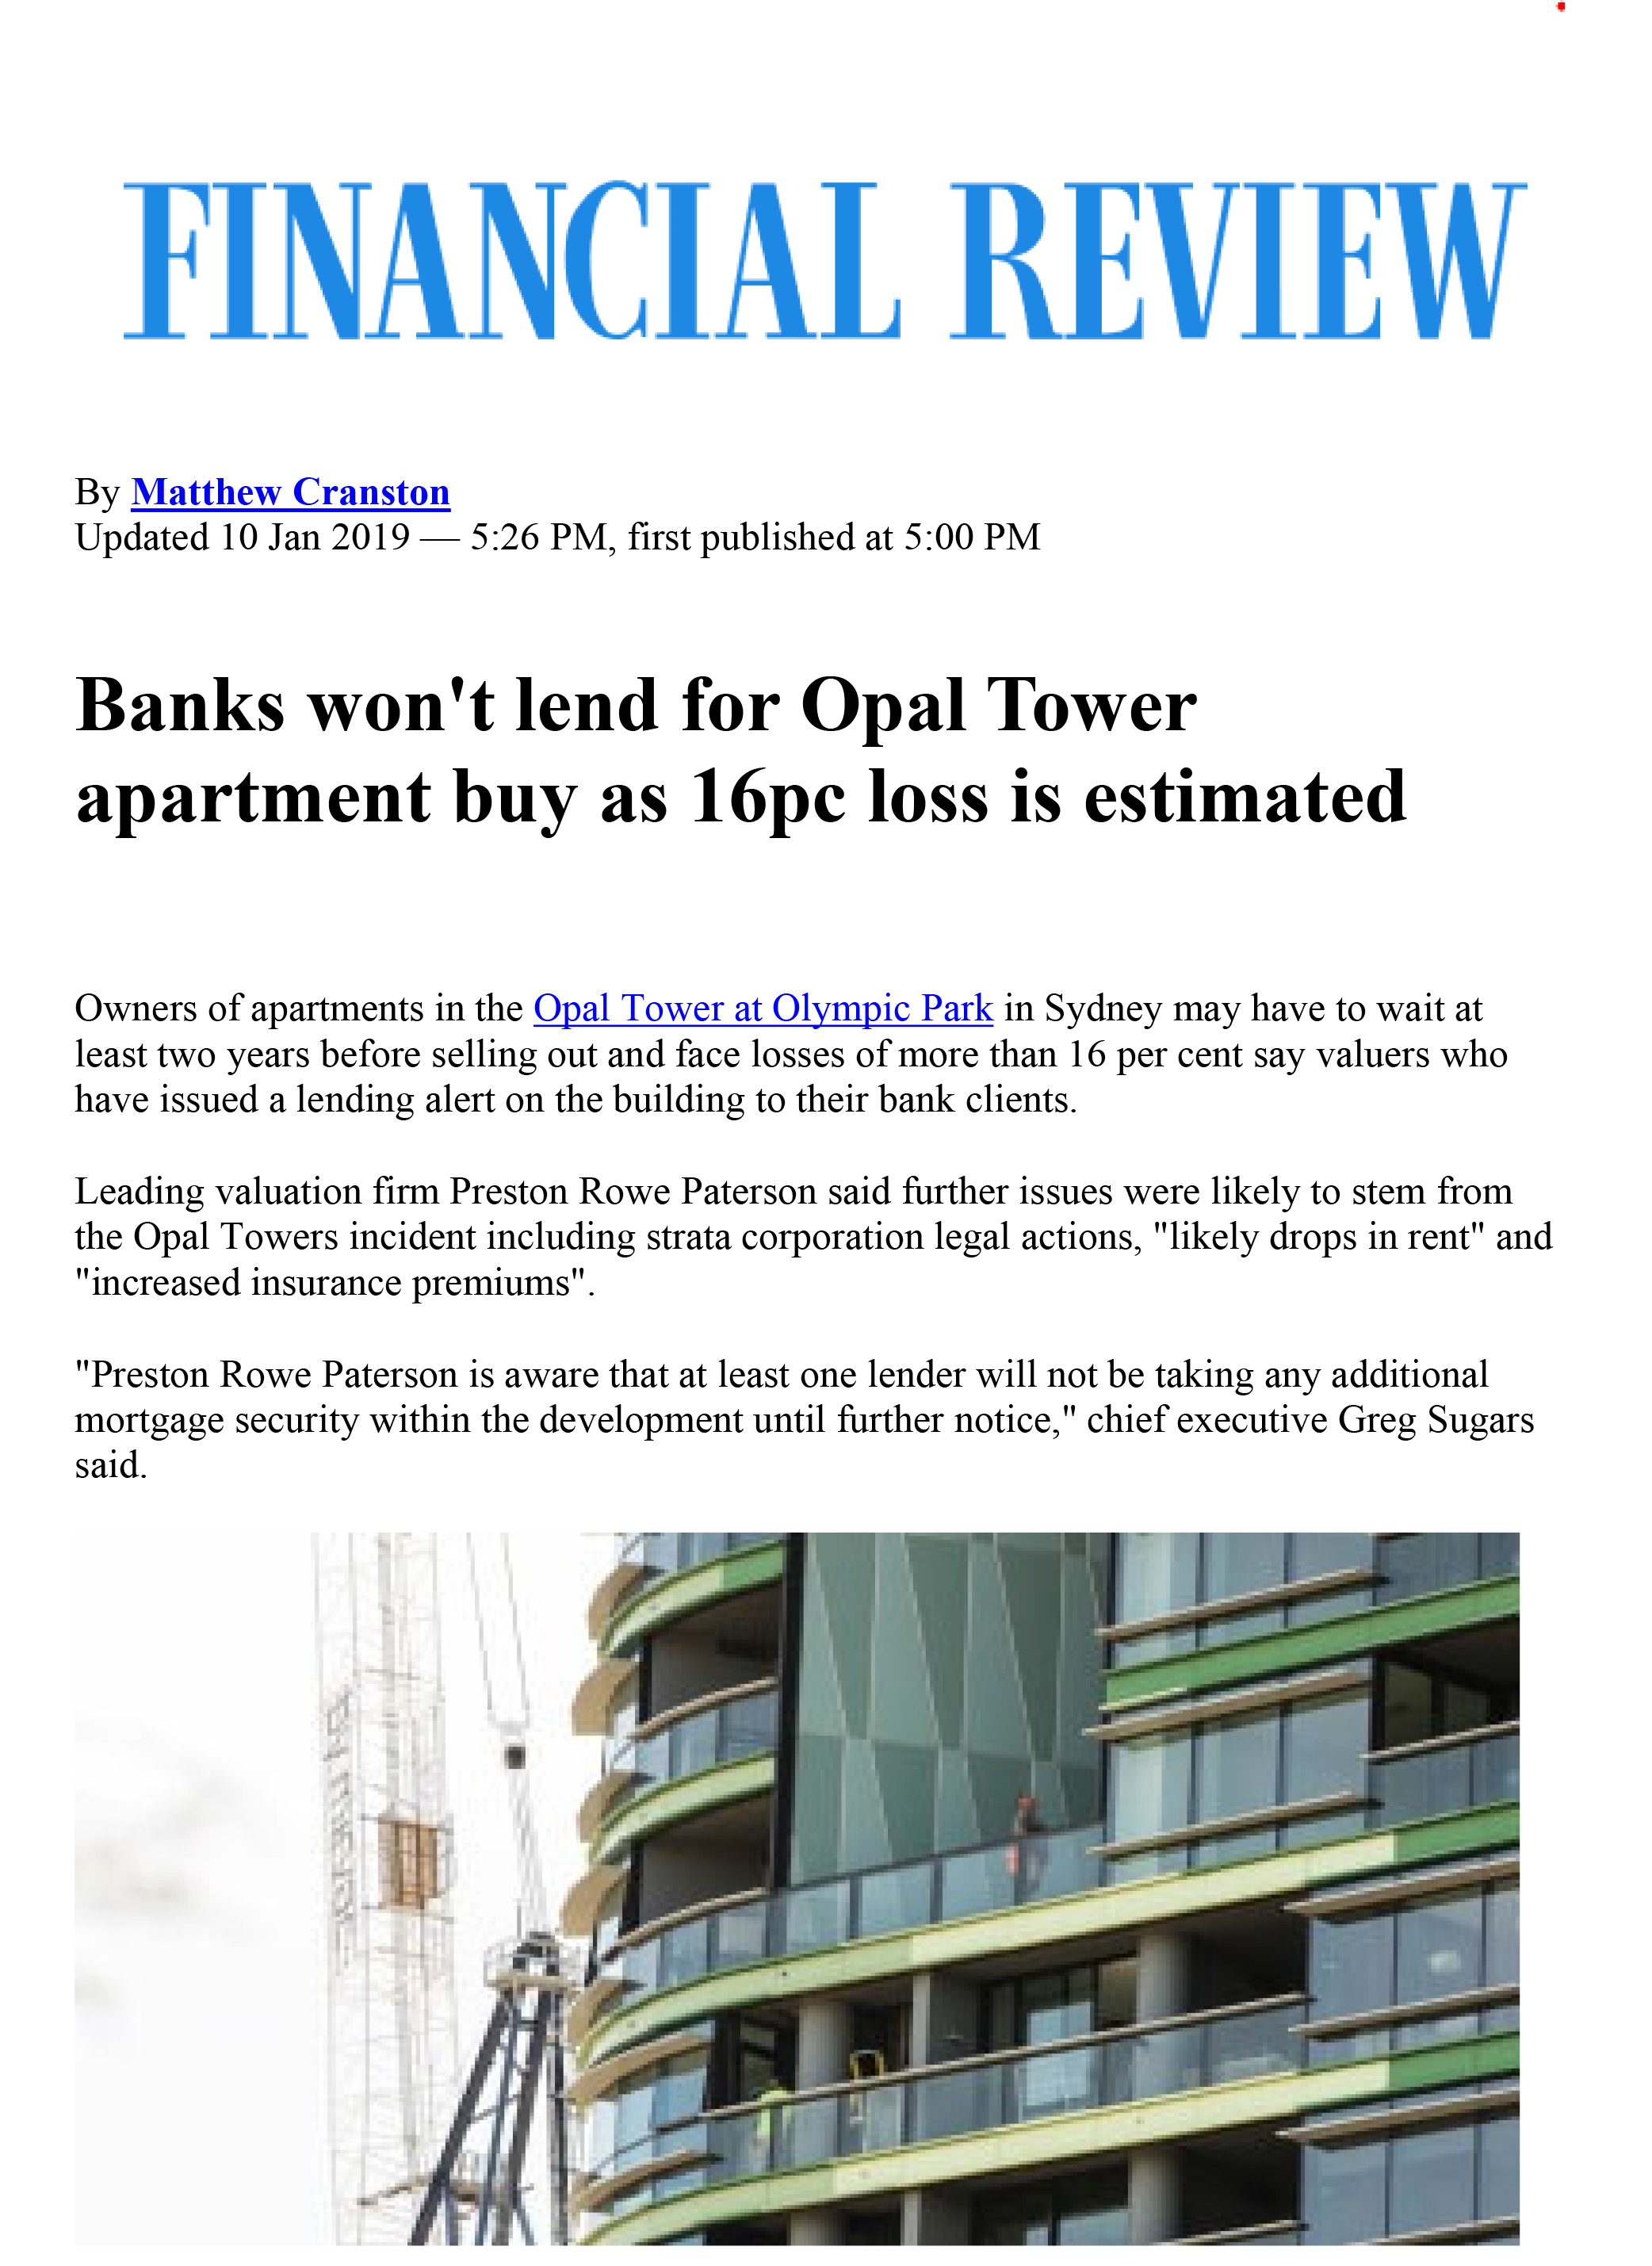 AFR Article - 11/01/19 Banks wont lend for Opal Tower apartment buy as 16pc loss is estimated